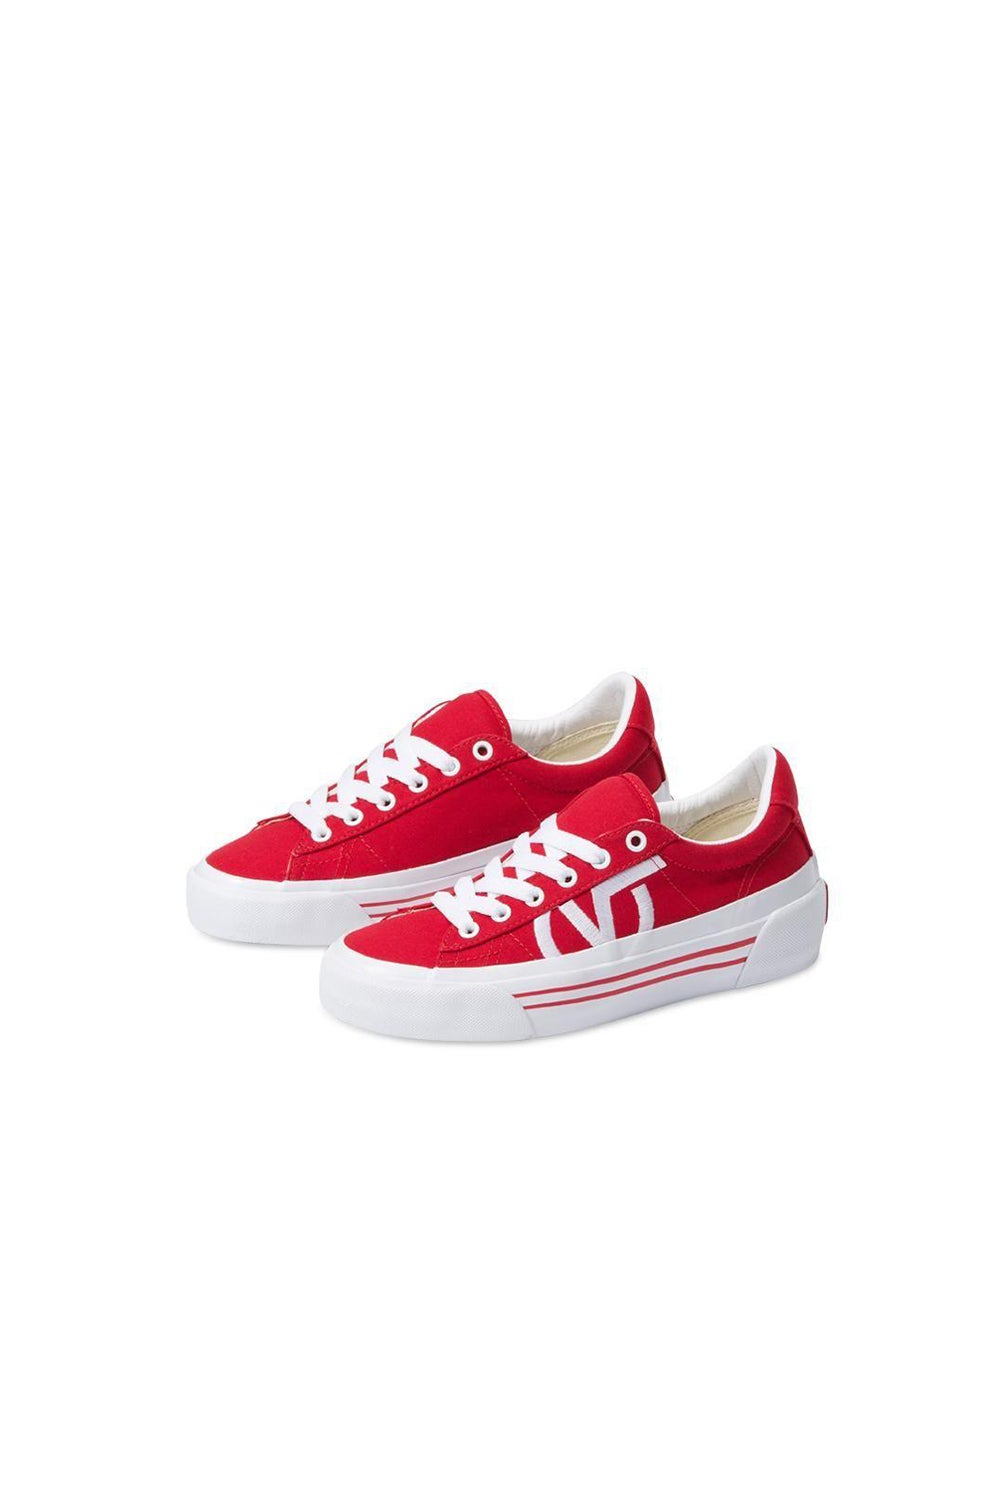 Vans Canvas Sid Ni Racing Red